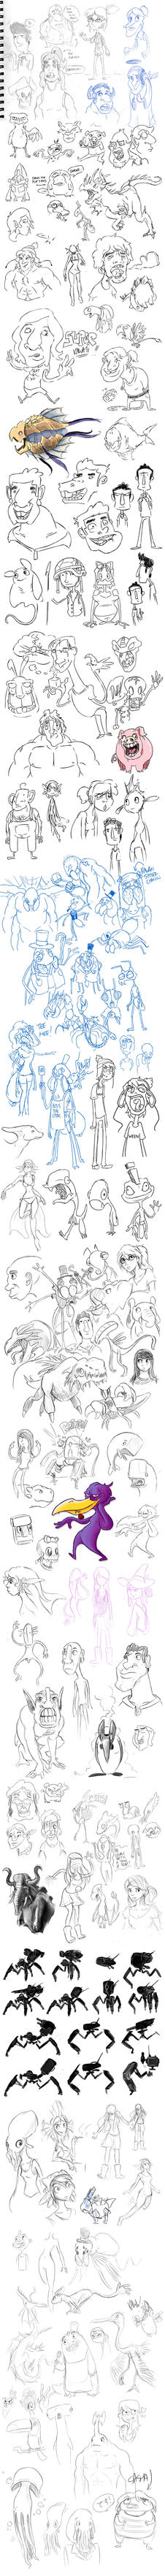 Semester 02 2012 Sketch Dump by chowgood